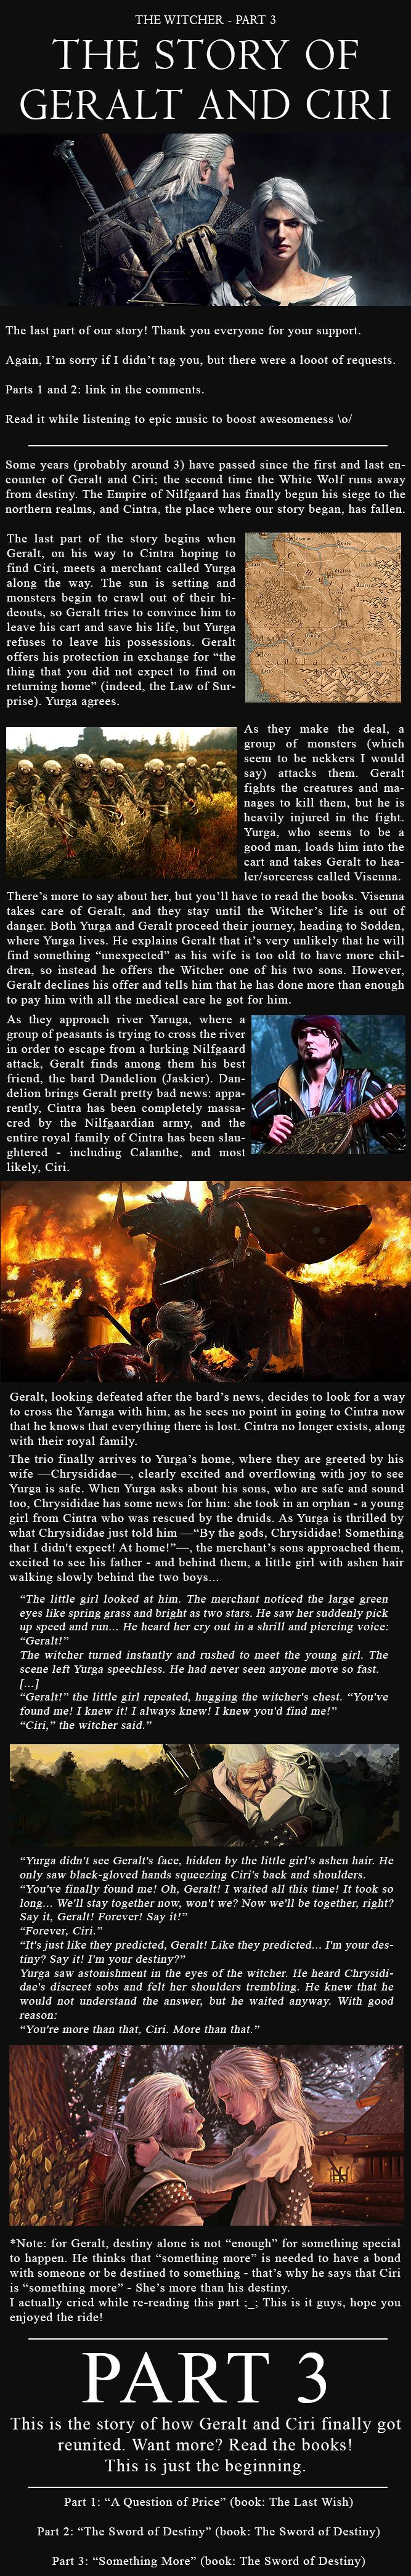 The story of Geralt of Rivia and Ciri - Part 3 - 9GAG